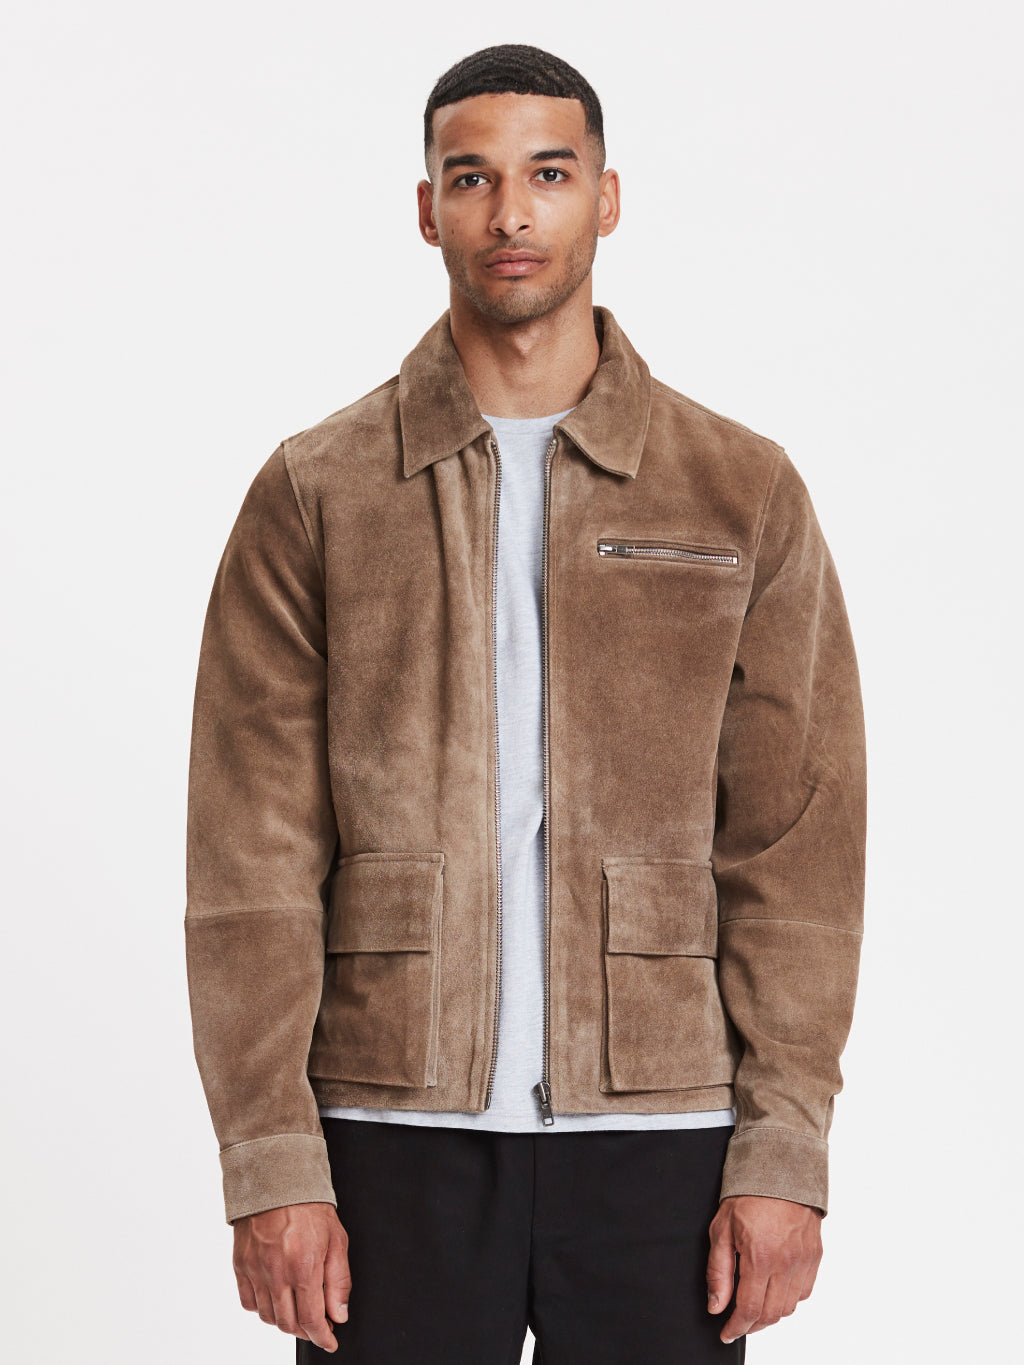 Smith Suede Jacket | Beige